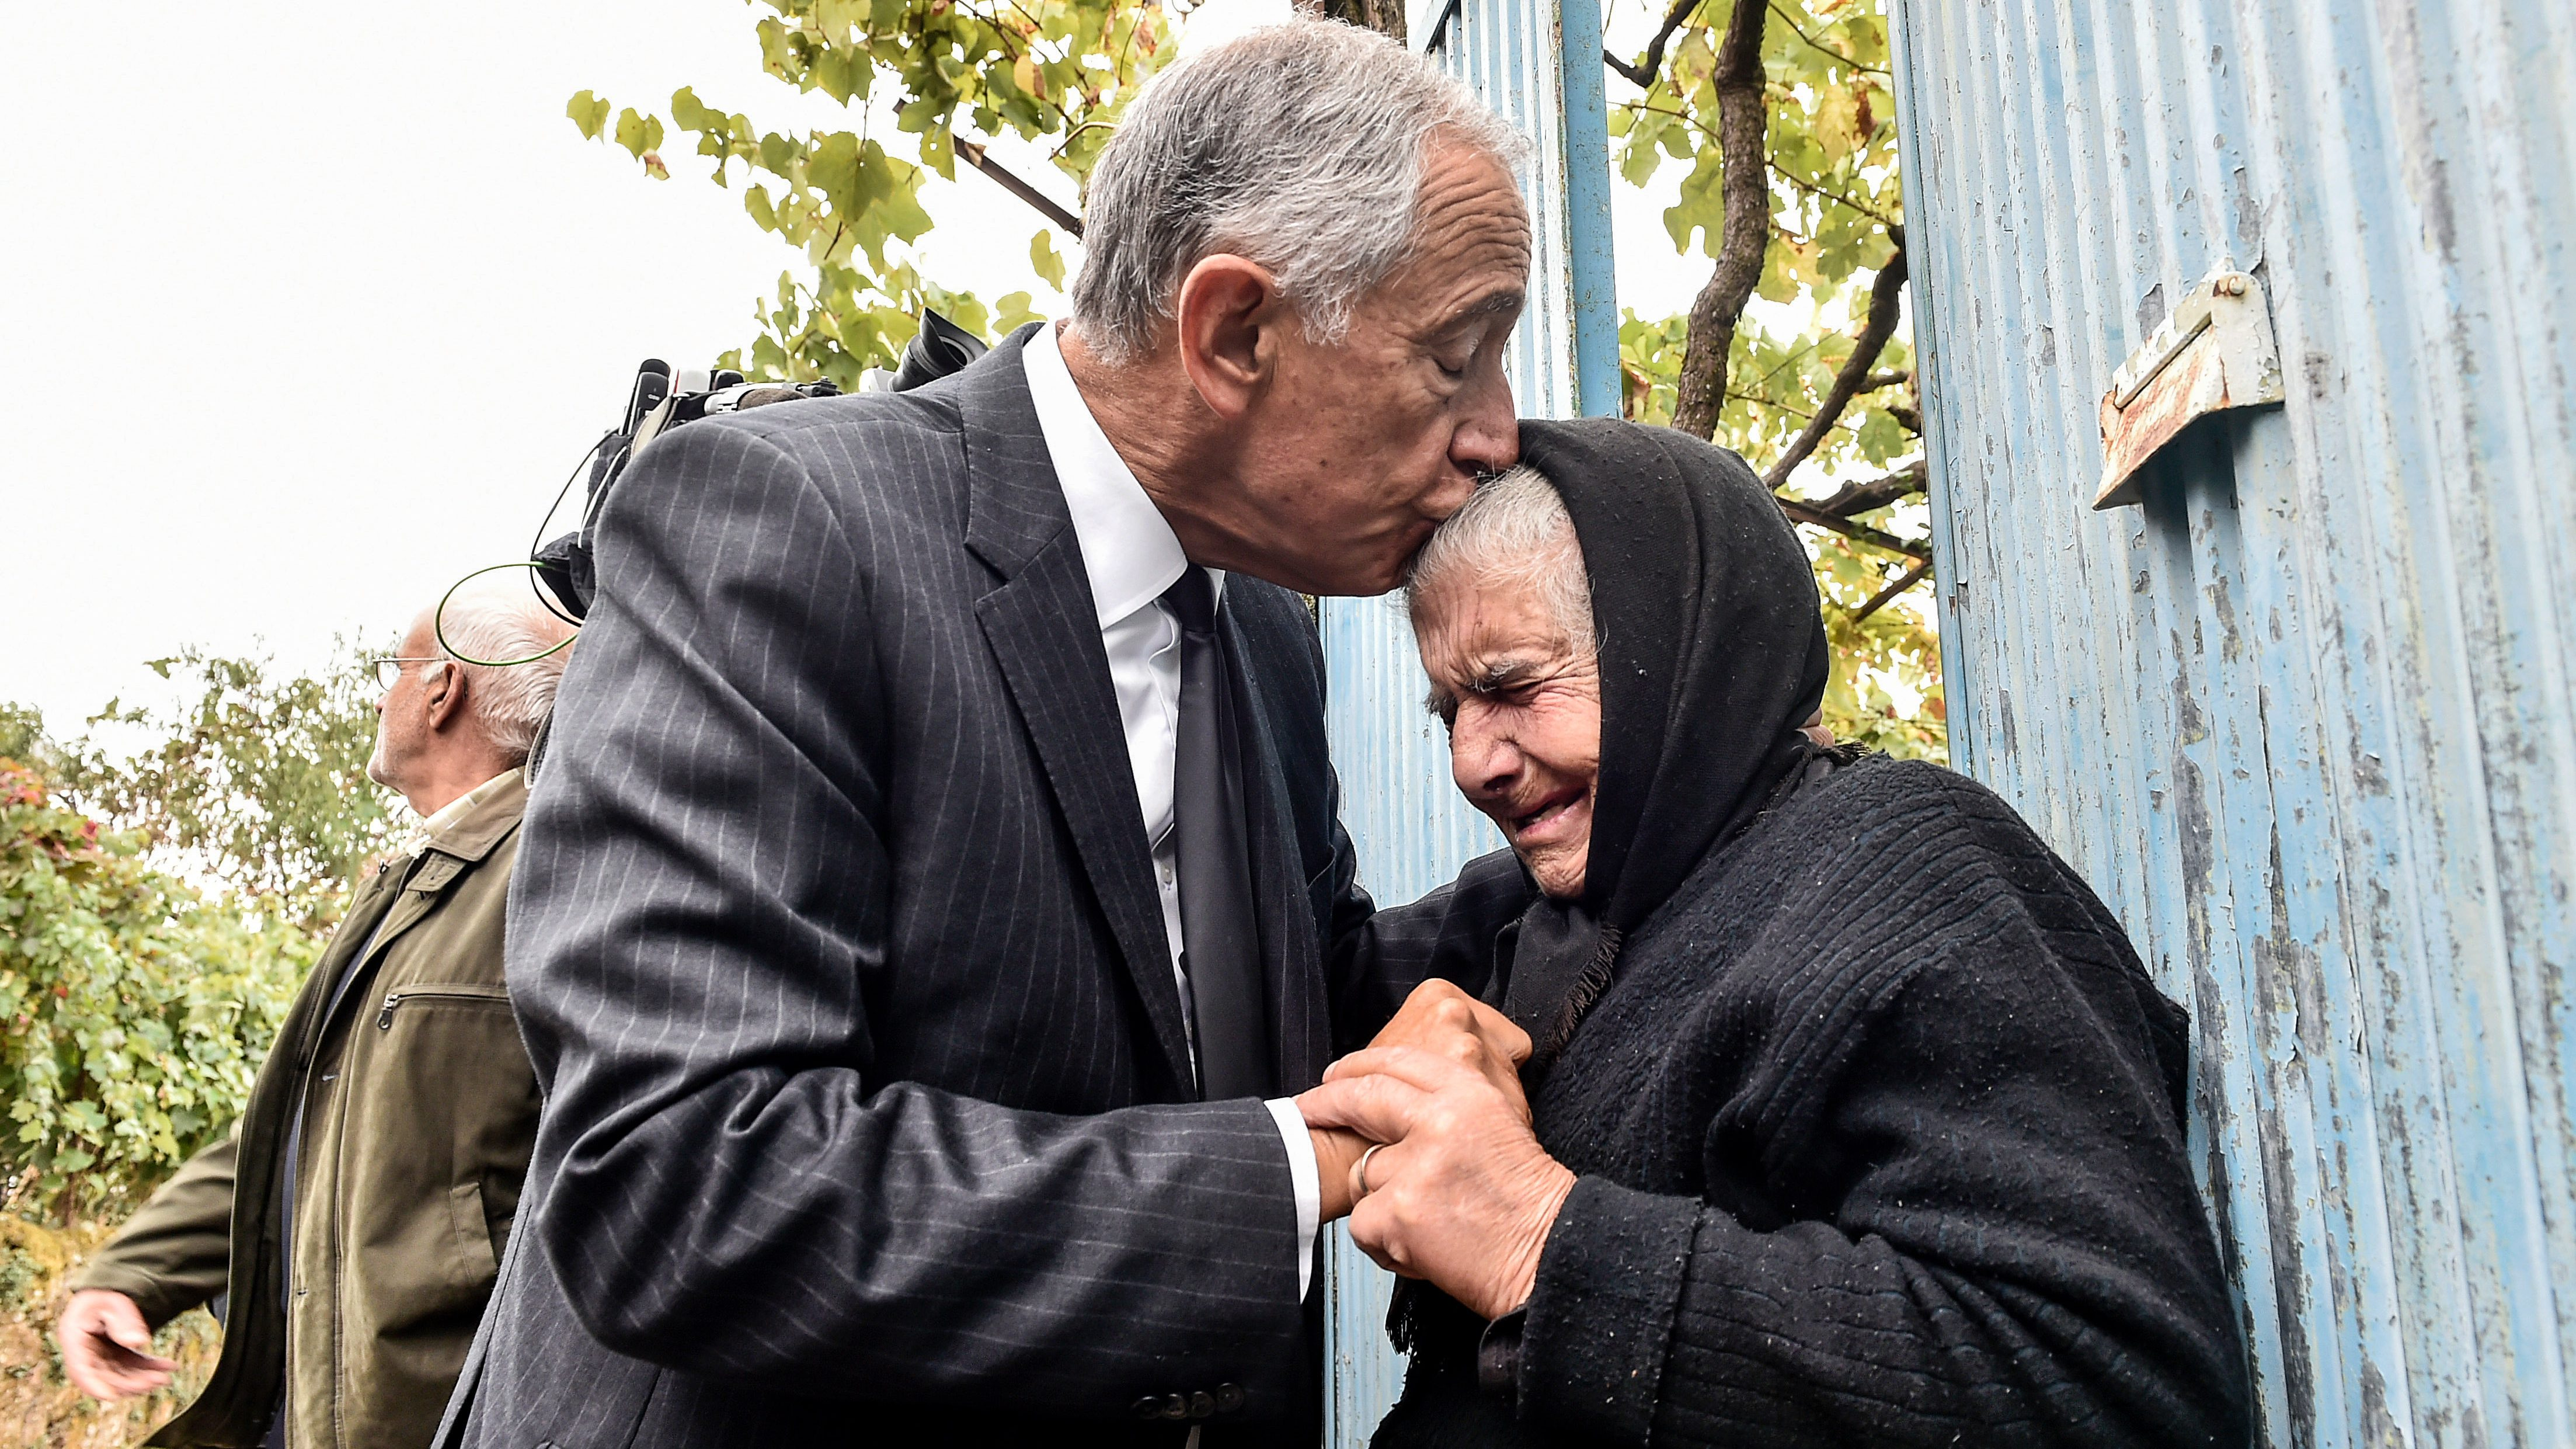 Portuguese President Marcelo Rebelo de Sousa visits municipalities affected by the wildfires